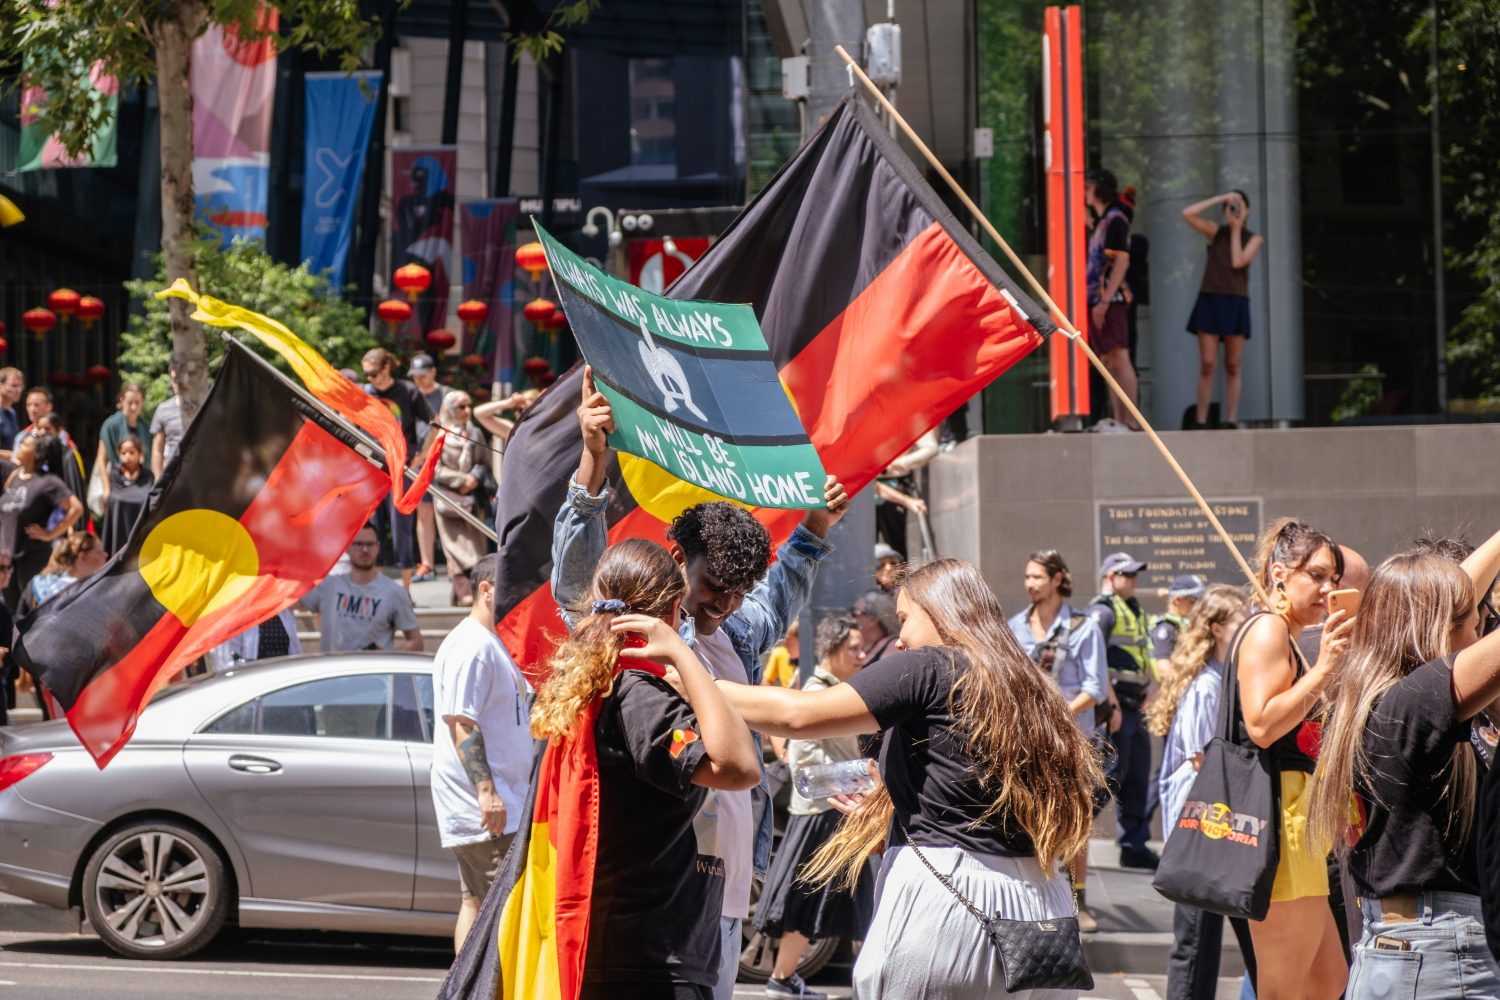 Keen to make your voice heard? Where to donate to support Australia's First Nations